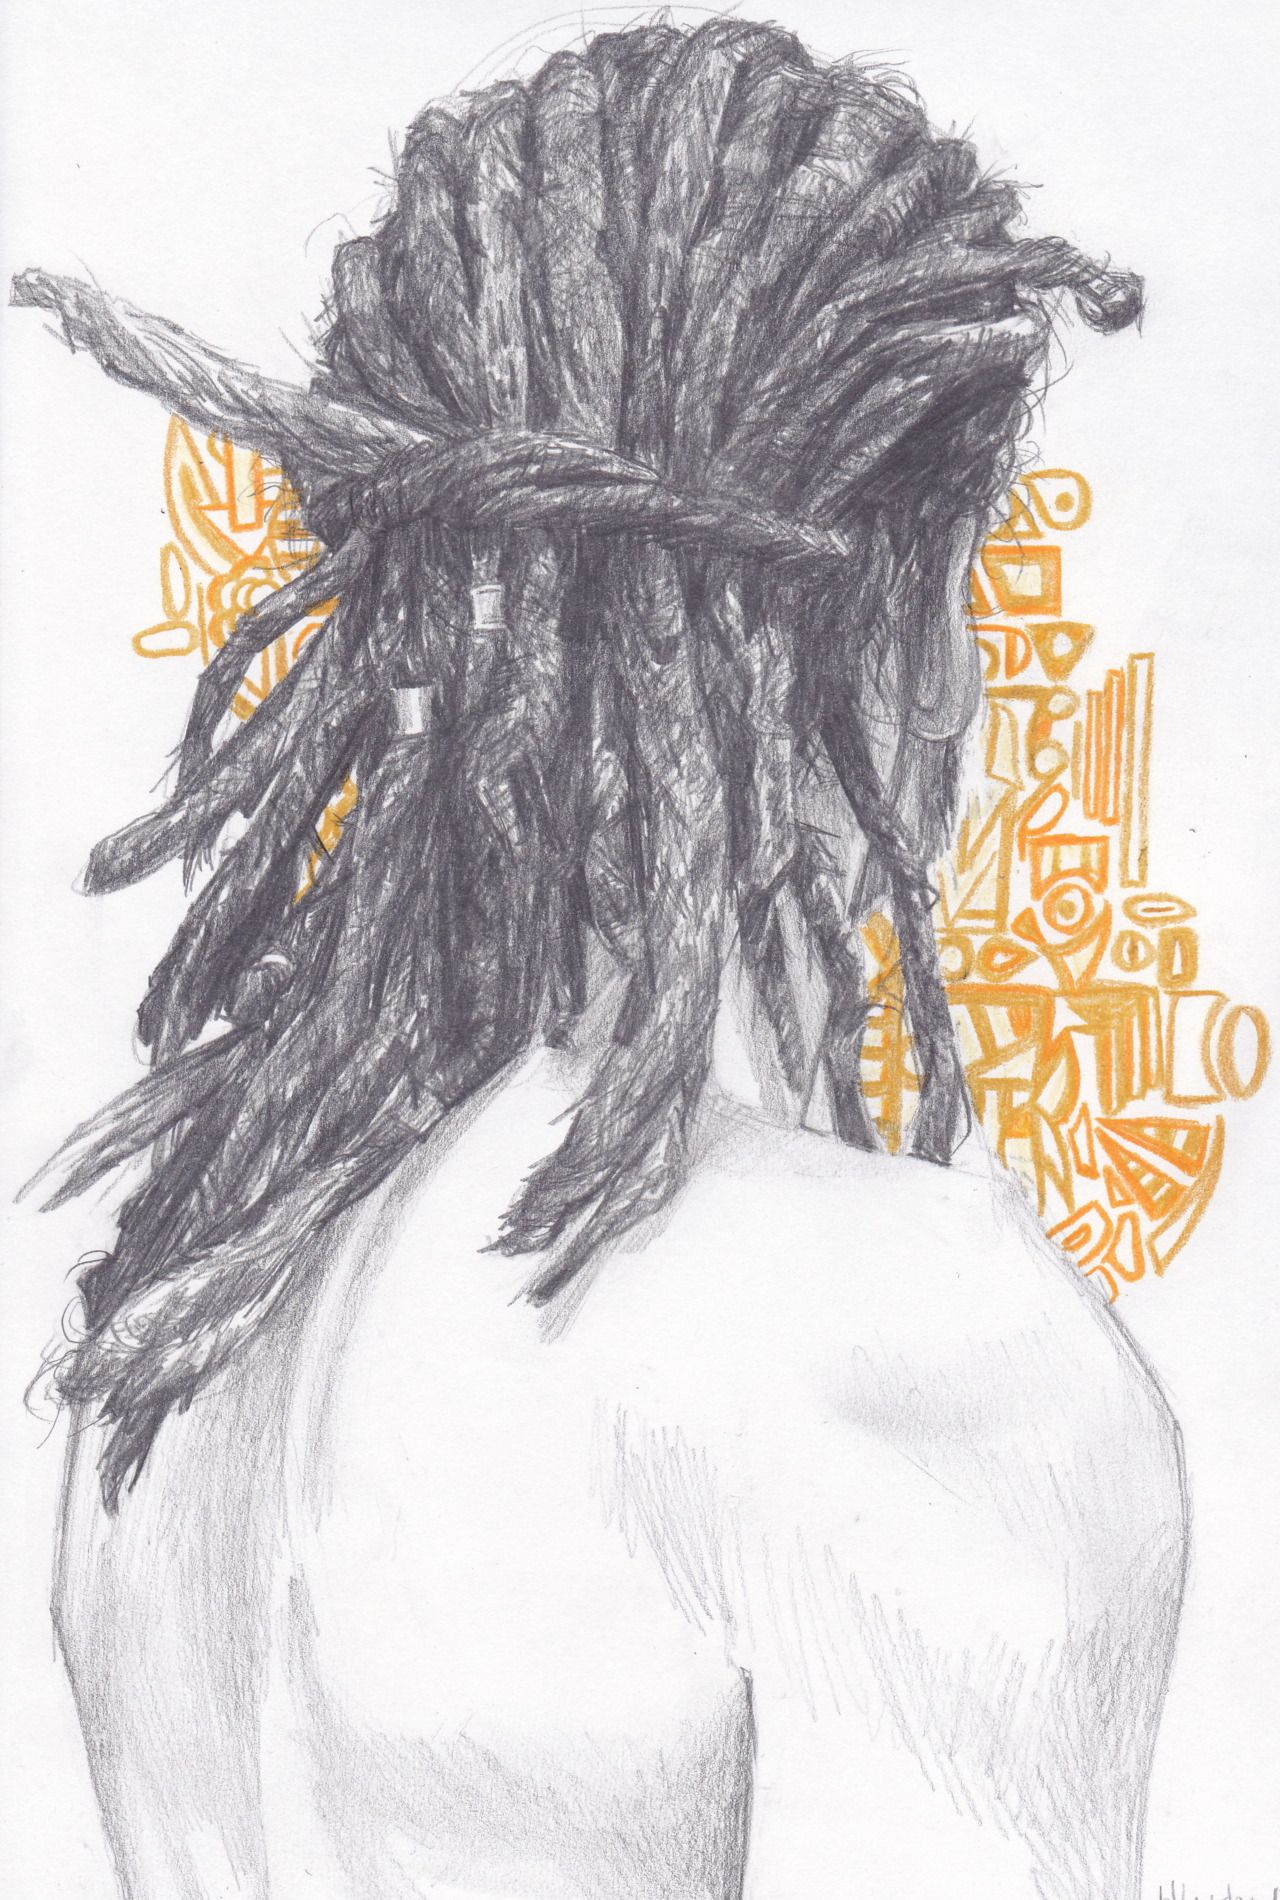 Dreads This On A Guy, From The Backahhhhh Huge Turn